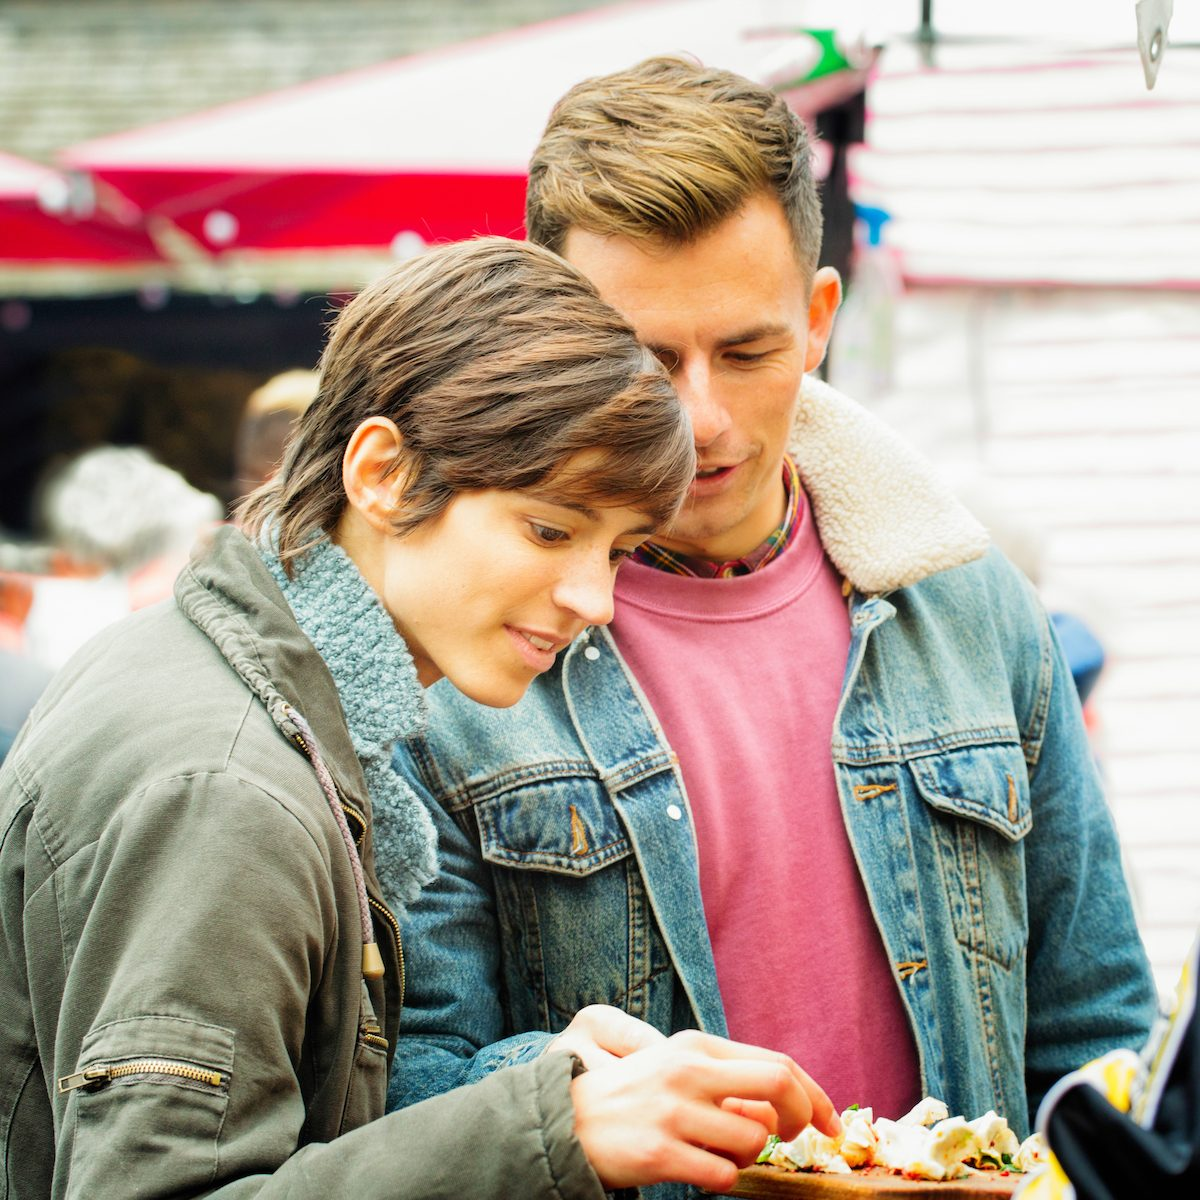 Young British couple sampling food at London market. They are dressed in Autumn clothing and the female is pickeing up chicken pieces to taste.